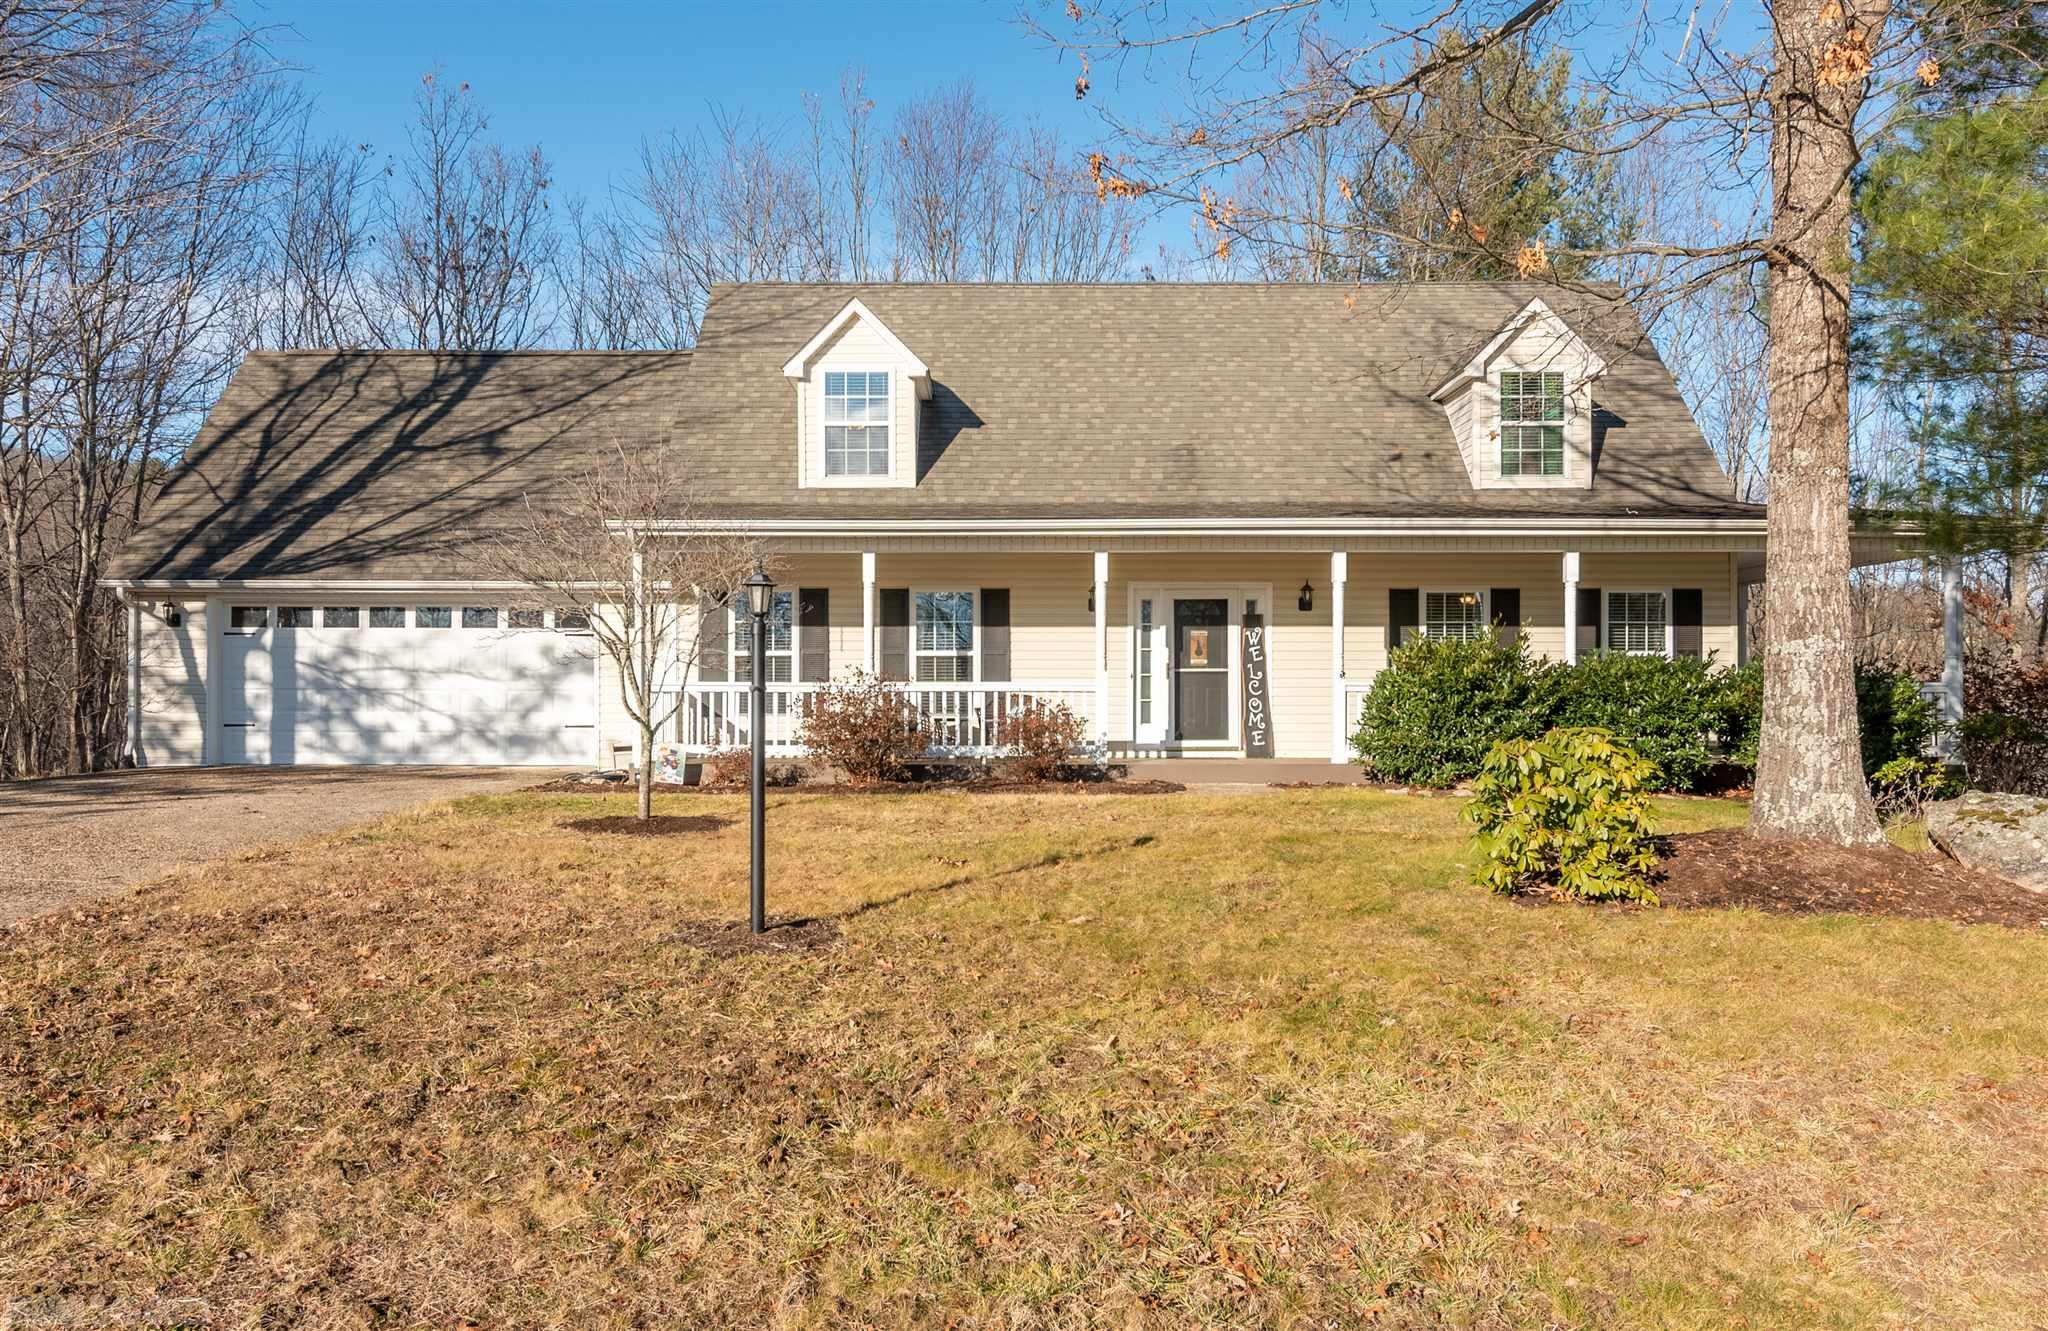 Beautiful, well-maintained Cape Cod home located on 2.16 acres at Brush Mountain Estates. This lovely home boasts a 2 car garage, wrap-around covered porch, and hardwood flooring throughout the main level. Owner's suite is conveniently situated on the main floor along with laundry on the main floor. Upstairs has two spacious bedrooms that feature dormer window seats. Partially finished walk-out basement can serve as an additional recreation room. Storage building located on property. Located within minutes to Virginia Tech. Move in ready!